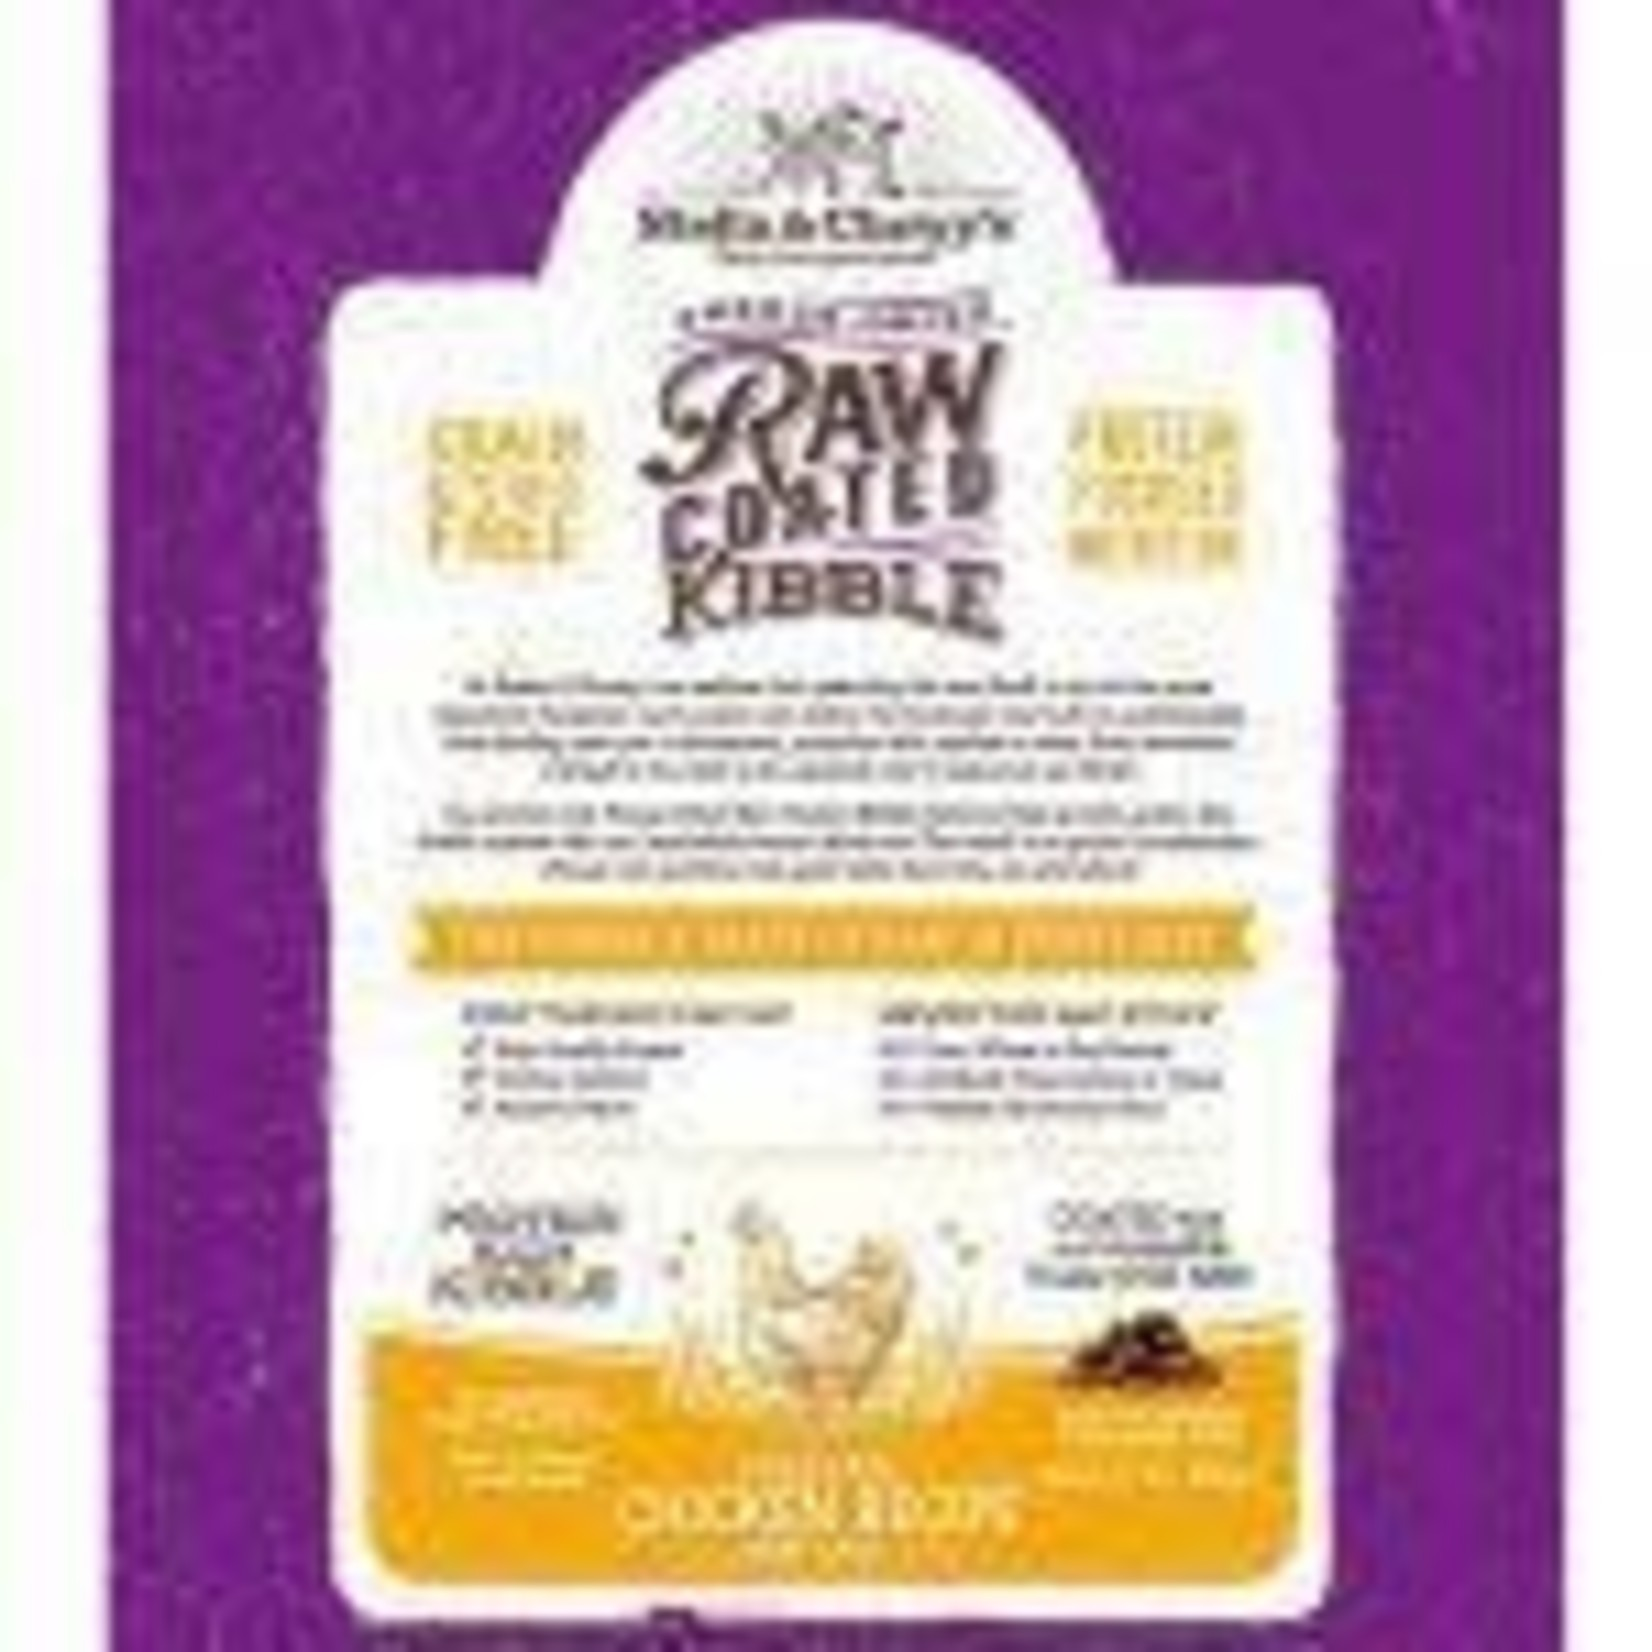 Stella & Chewy s Raw Coated Kibble-Chicken